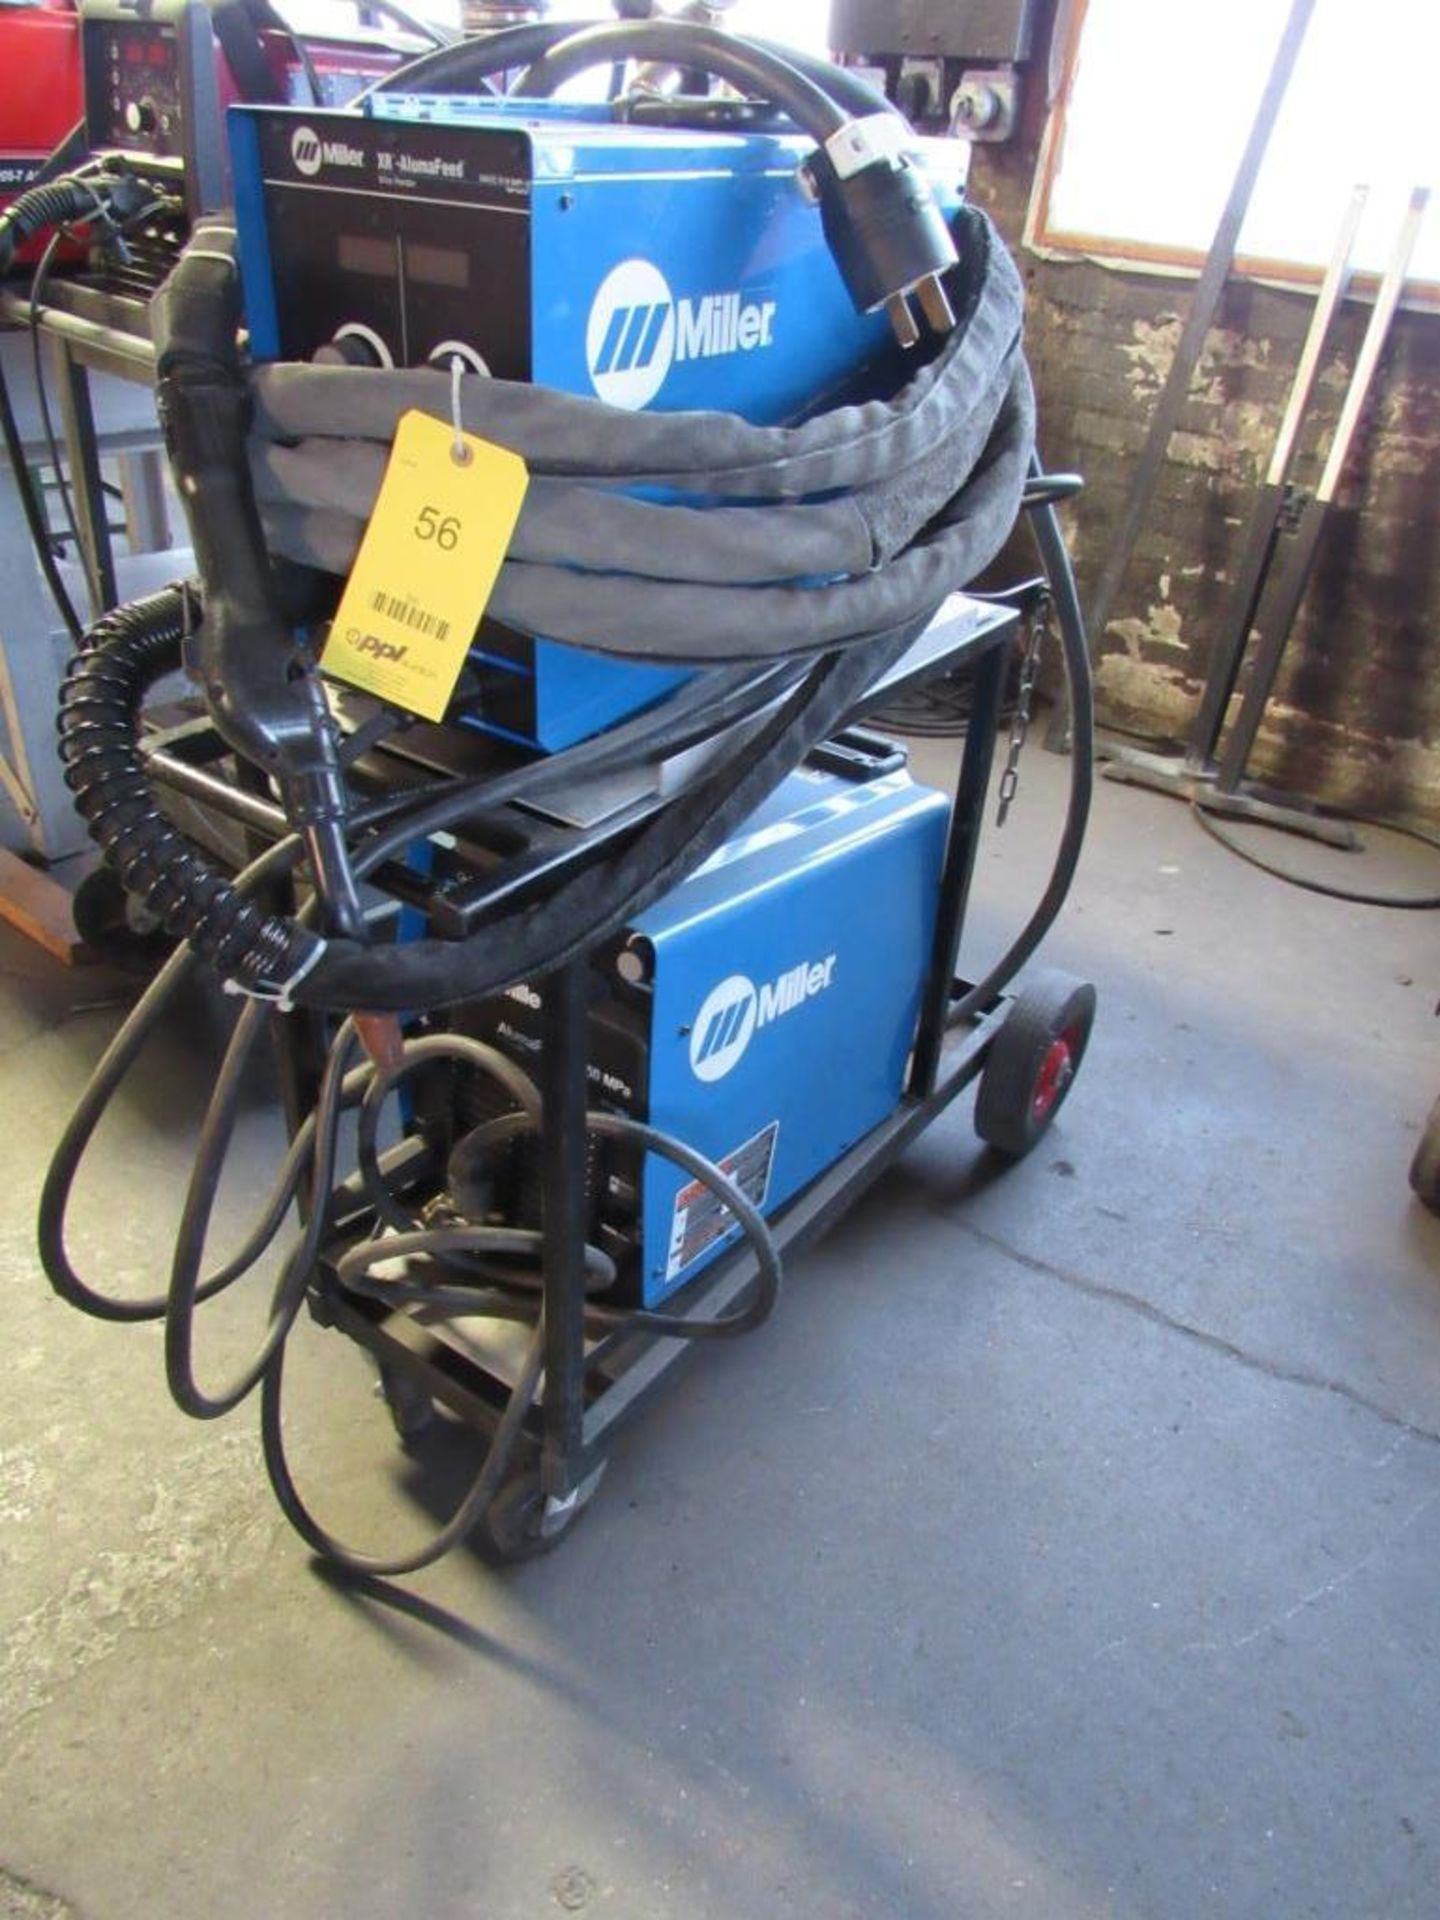 Lot 56 - Miller 400 Amp XR Acumafeed MIG Welder, Wire Feed, Cable, Gun, Flow Meter, with Miller 350 Amp Aluma